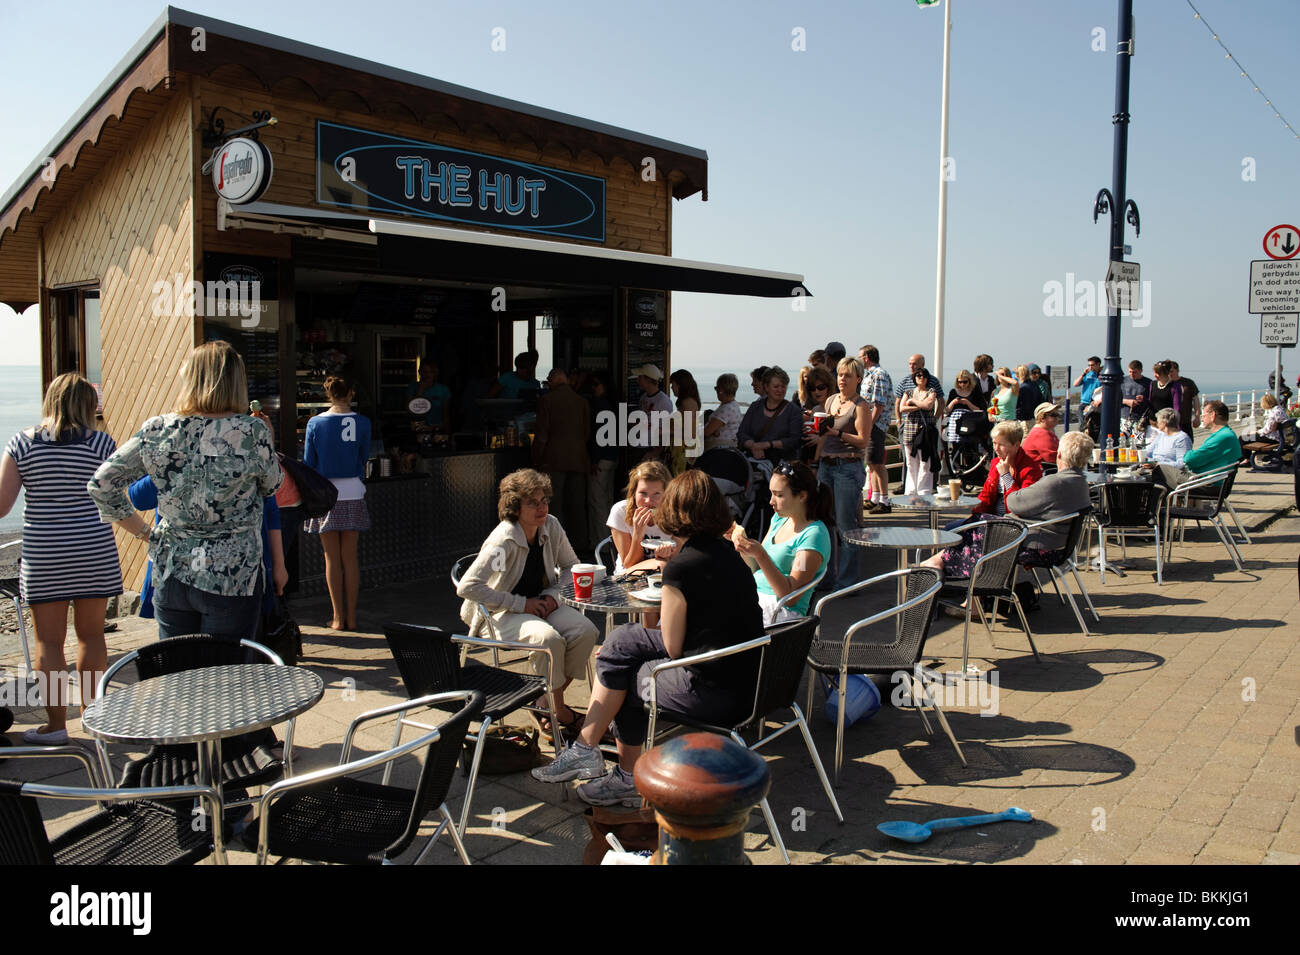 Crowds of people outside The Hut, seaside icecream parlour cabin cafe, Aberystwyth south promenade, Wales UK - Stock Image